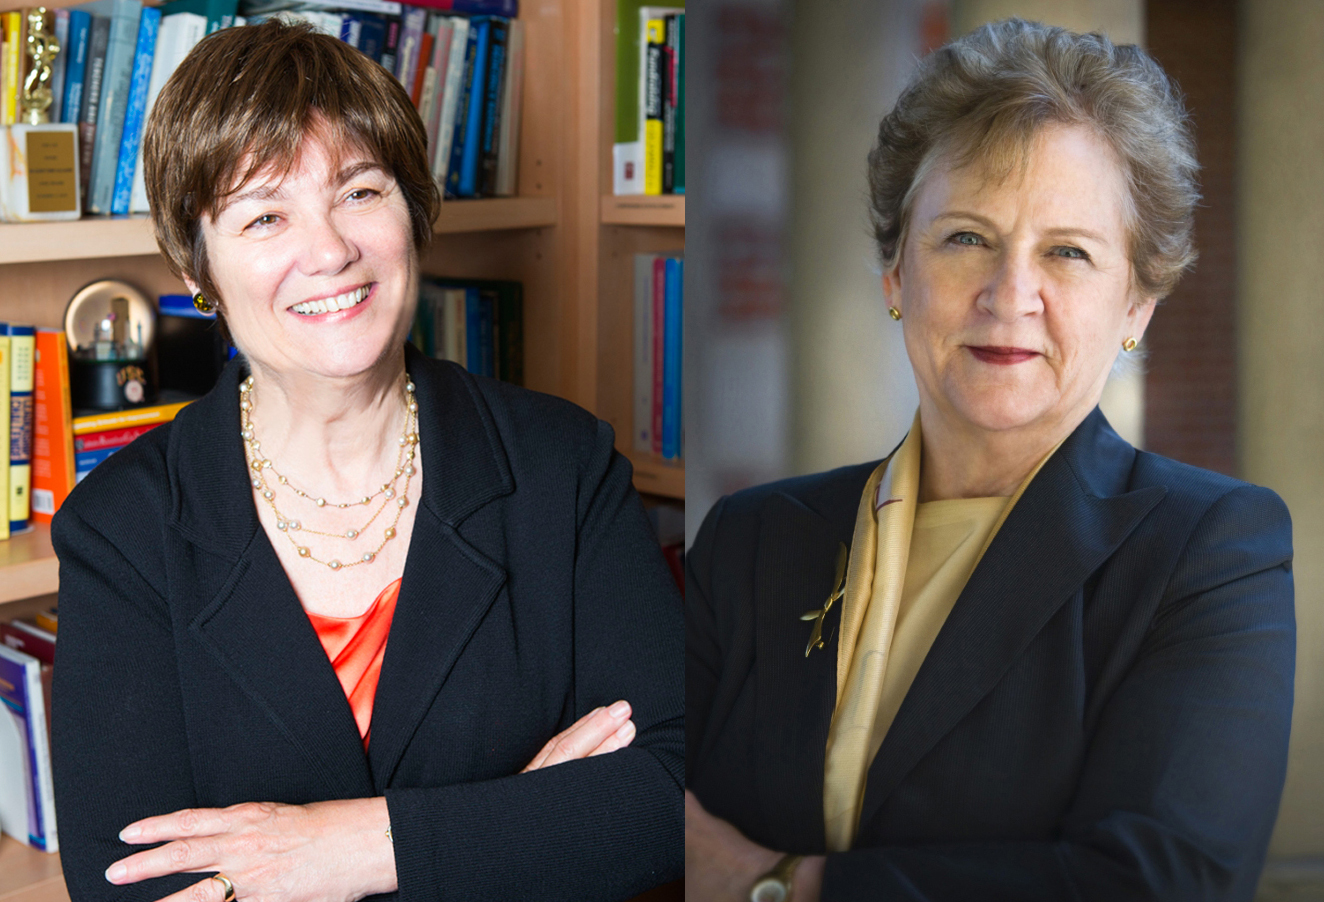 Karen Symms Gallagher and Marilyn L. Flynn were recognized at the annual Academic Honors Convocation.